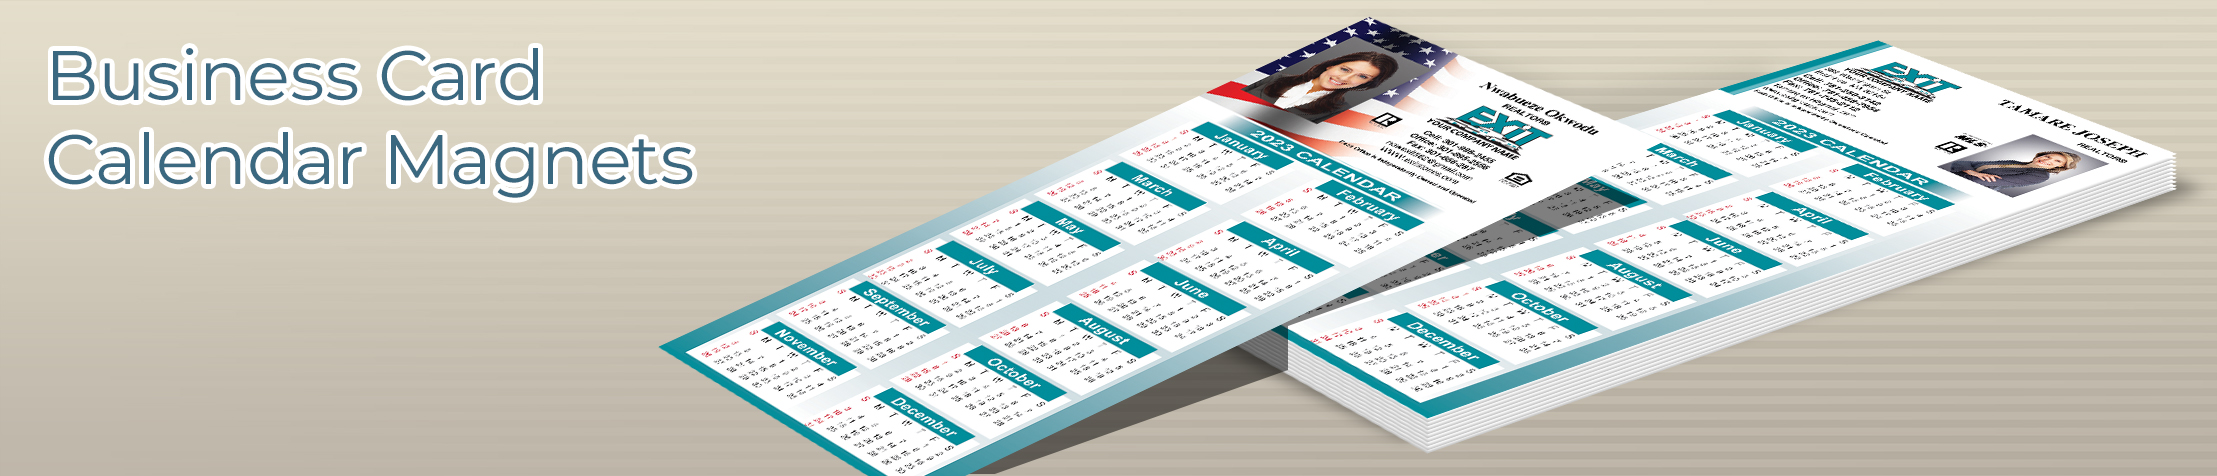 Exit Realty Business Card Calendar Magnets - Exit Realty approved vendor 2019 calendars with photo and contact info | BestPrintBuy.com